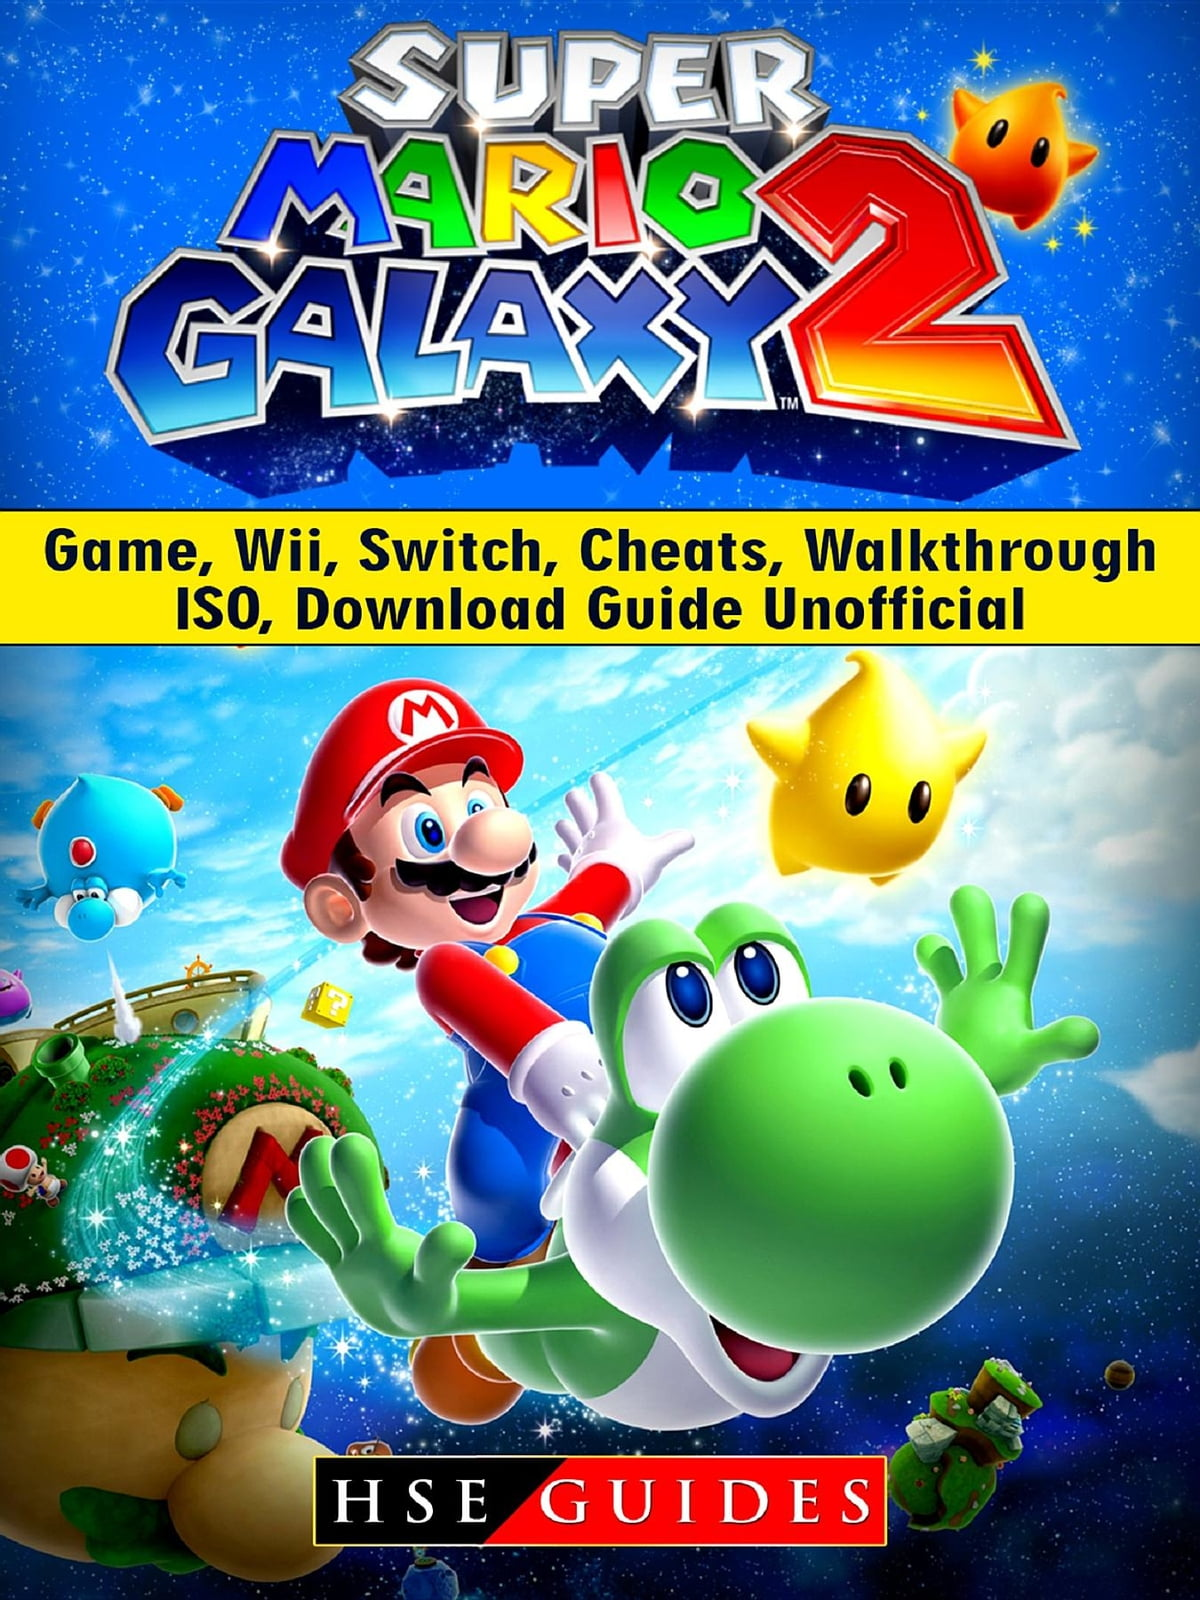 Super Mario Galaxy 2 Game, Wii, Switch, Cheats, Walkthrough, ISO, Download  Guide Unofficial ebook by HSE Guides - Rakuten Kobo